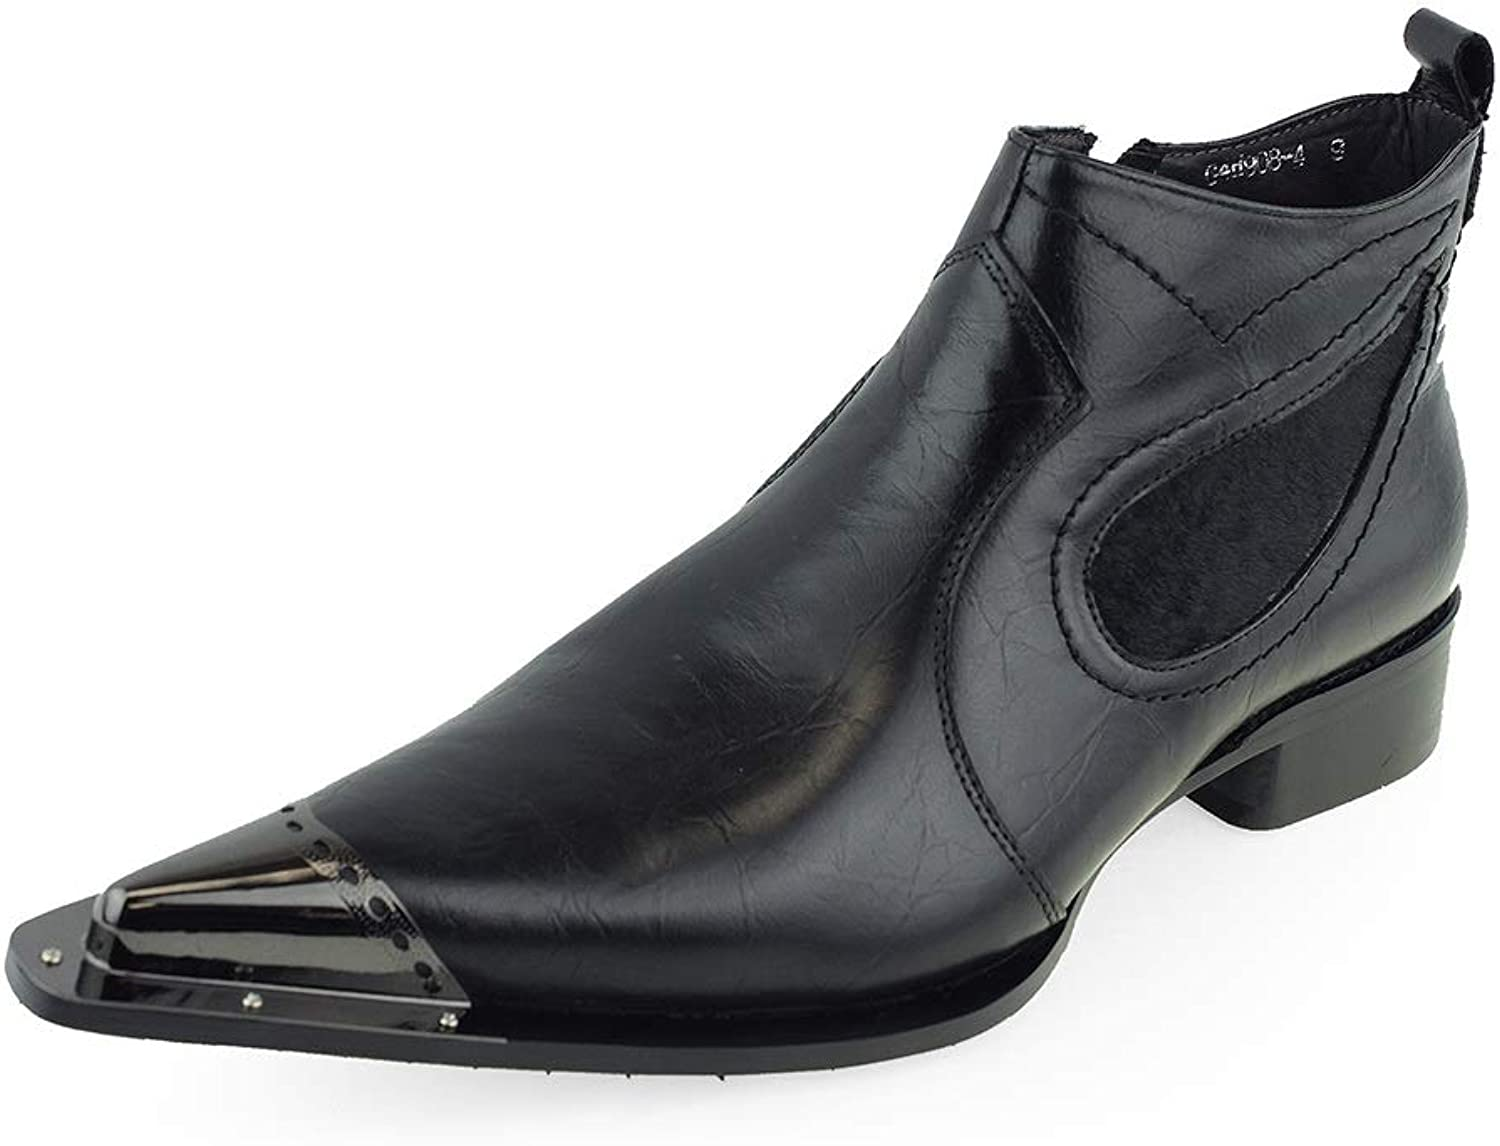 Men's Fashionable Ankle Boots Pointed Metal Toe (color   Black, Size   7.5 UK)